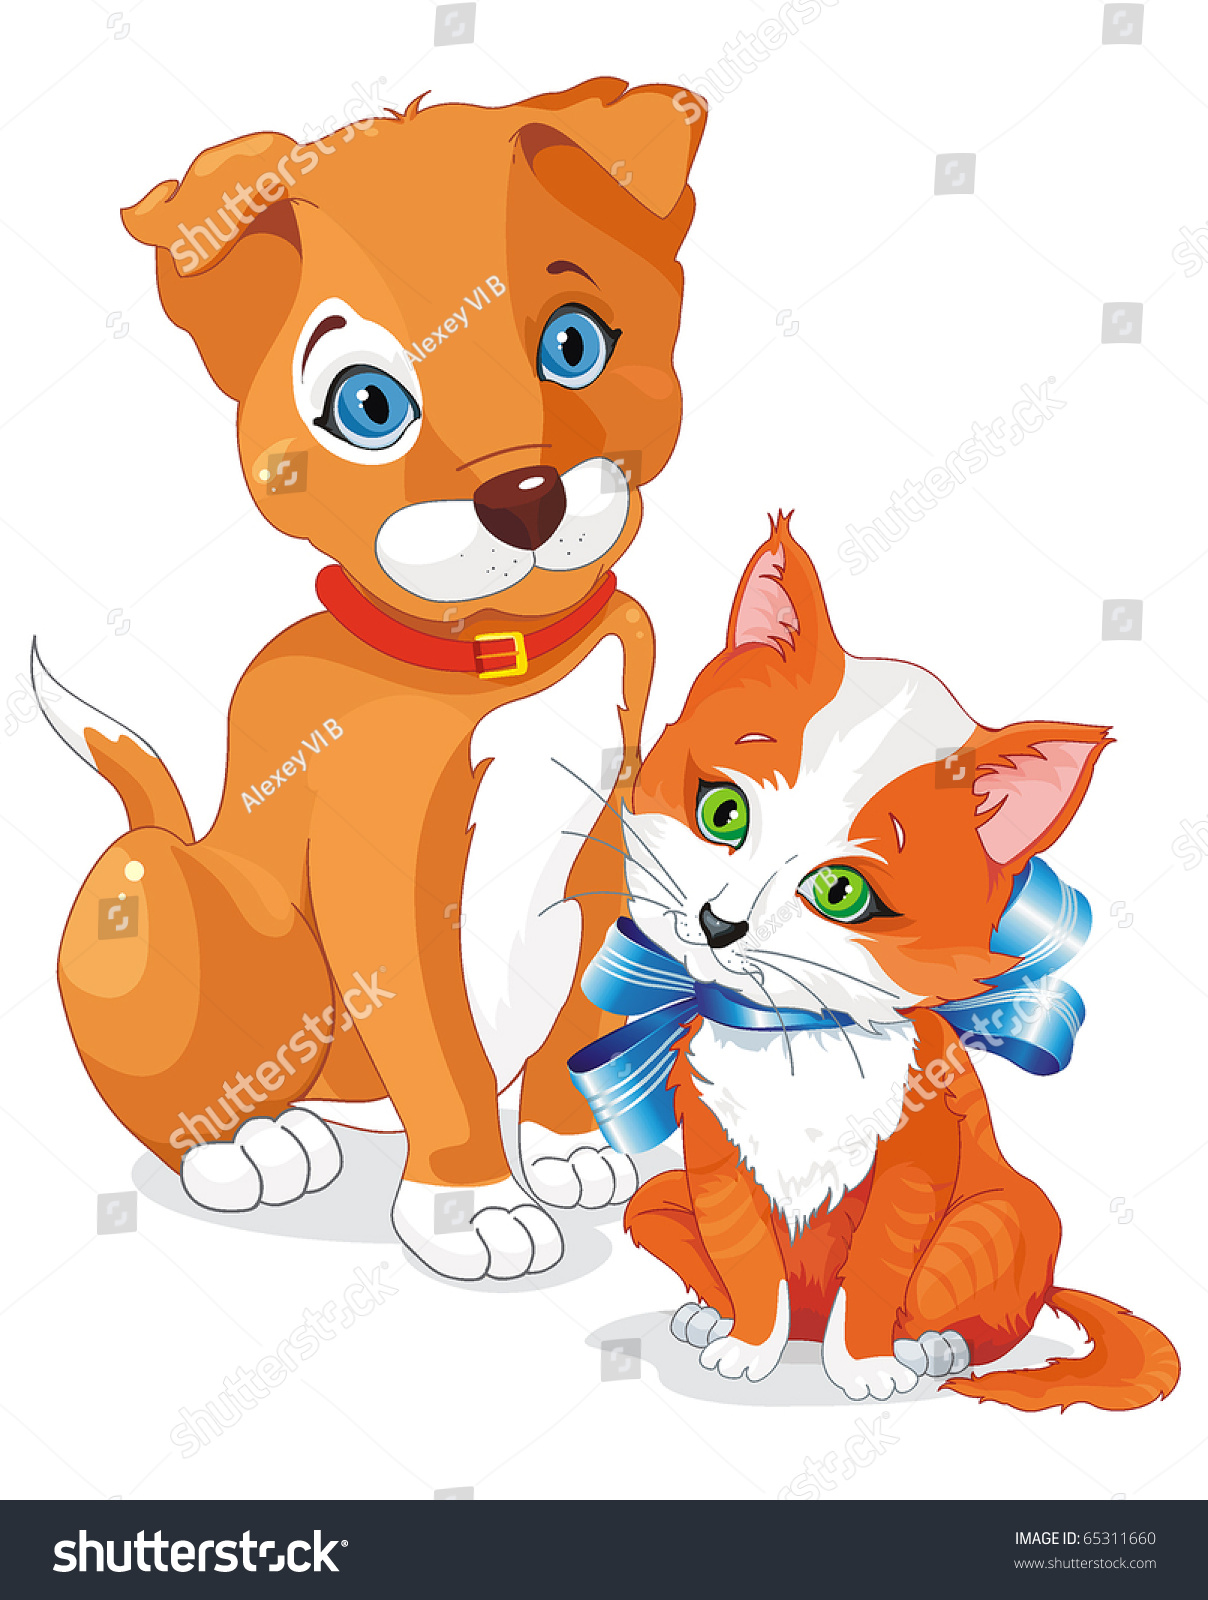 Cat And Dog Clipart at GetDrawings | Free download |Puppy Dog And Cat Clipart